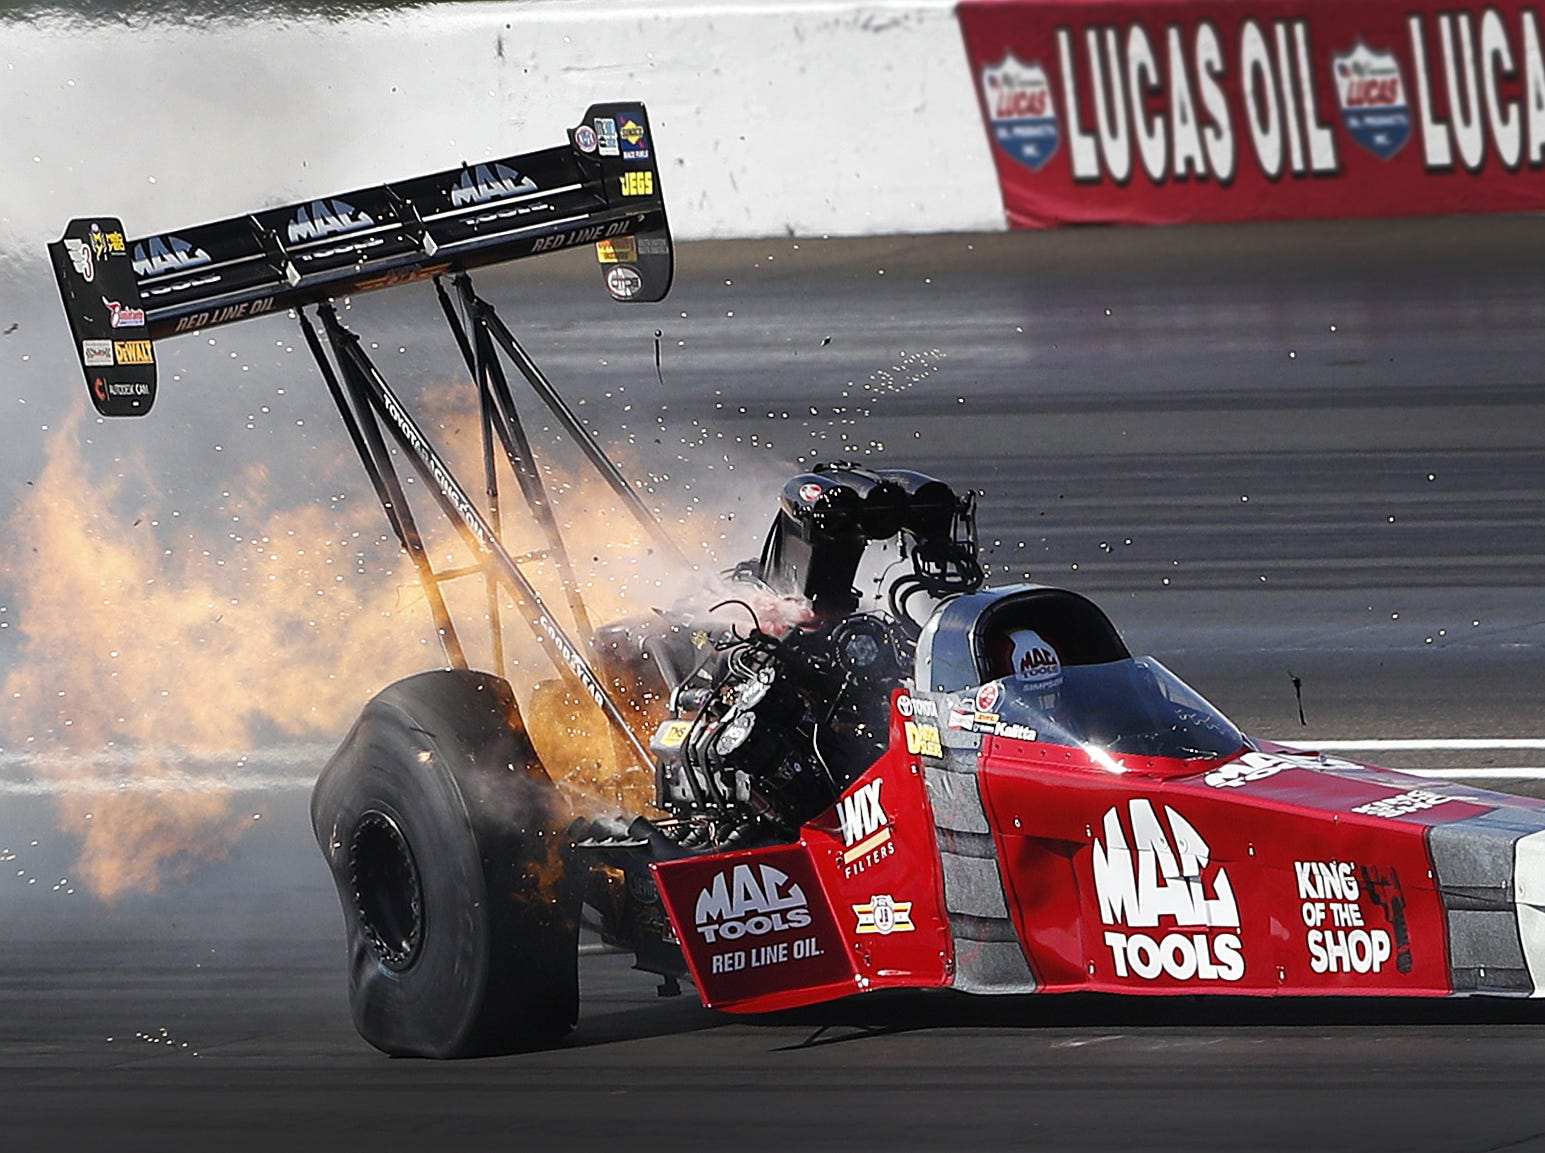 Top Fuel driver Doug Kalitta hangs onto his car as his engine blows during his first run of the day during the NHRA U.S. Nationals at Lucas Oil Raceway on Monday, Sept. 3, 2018.